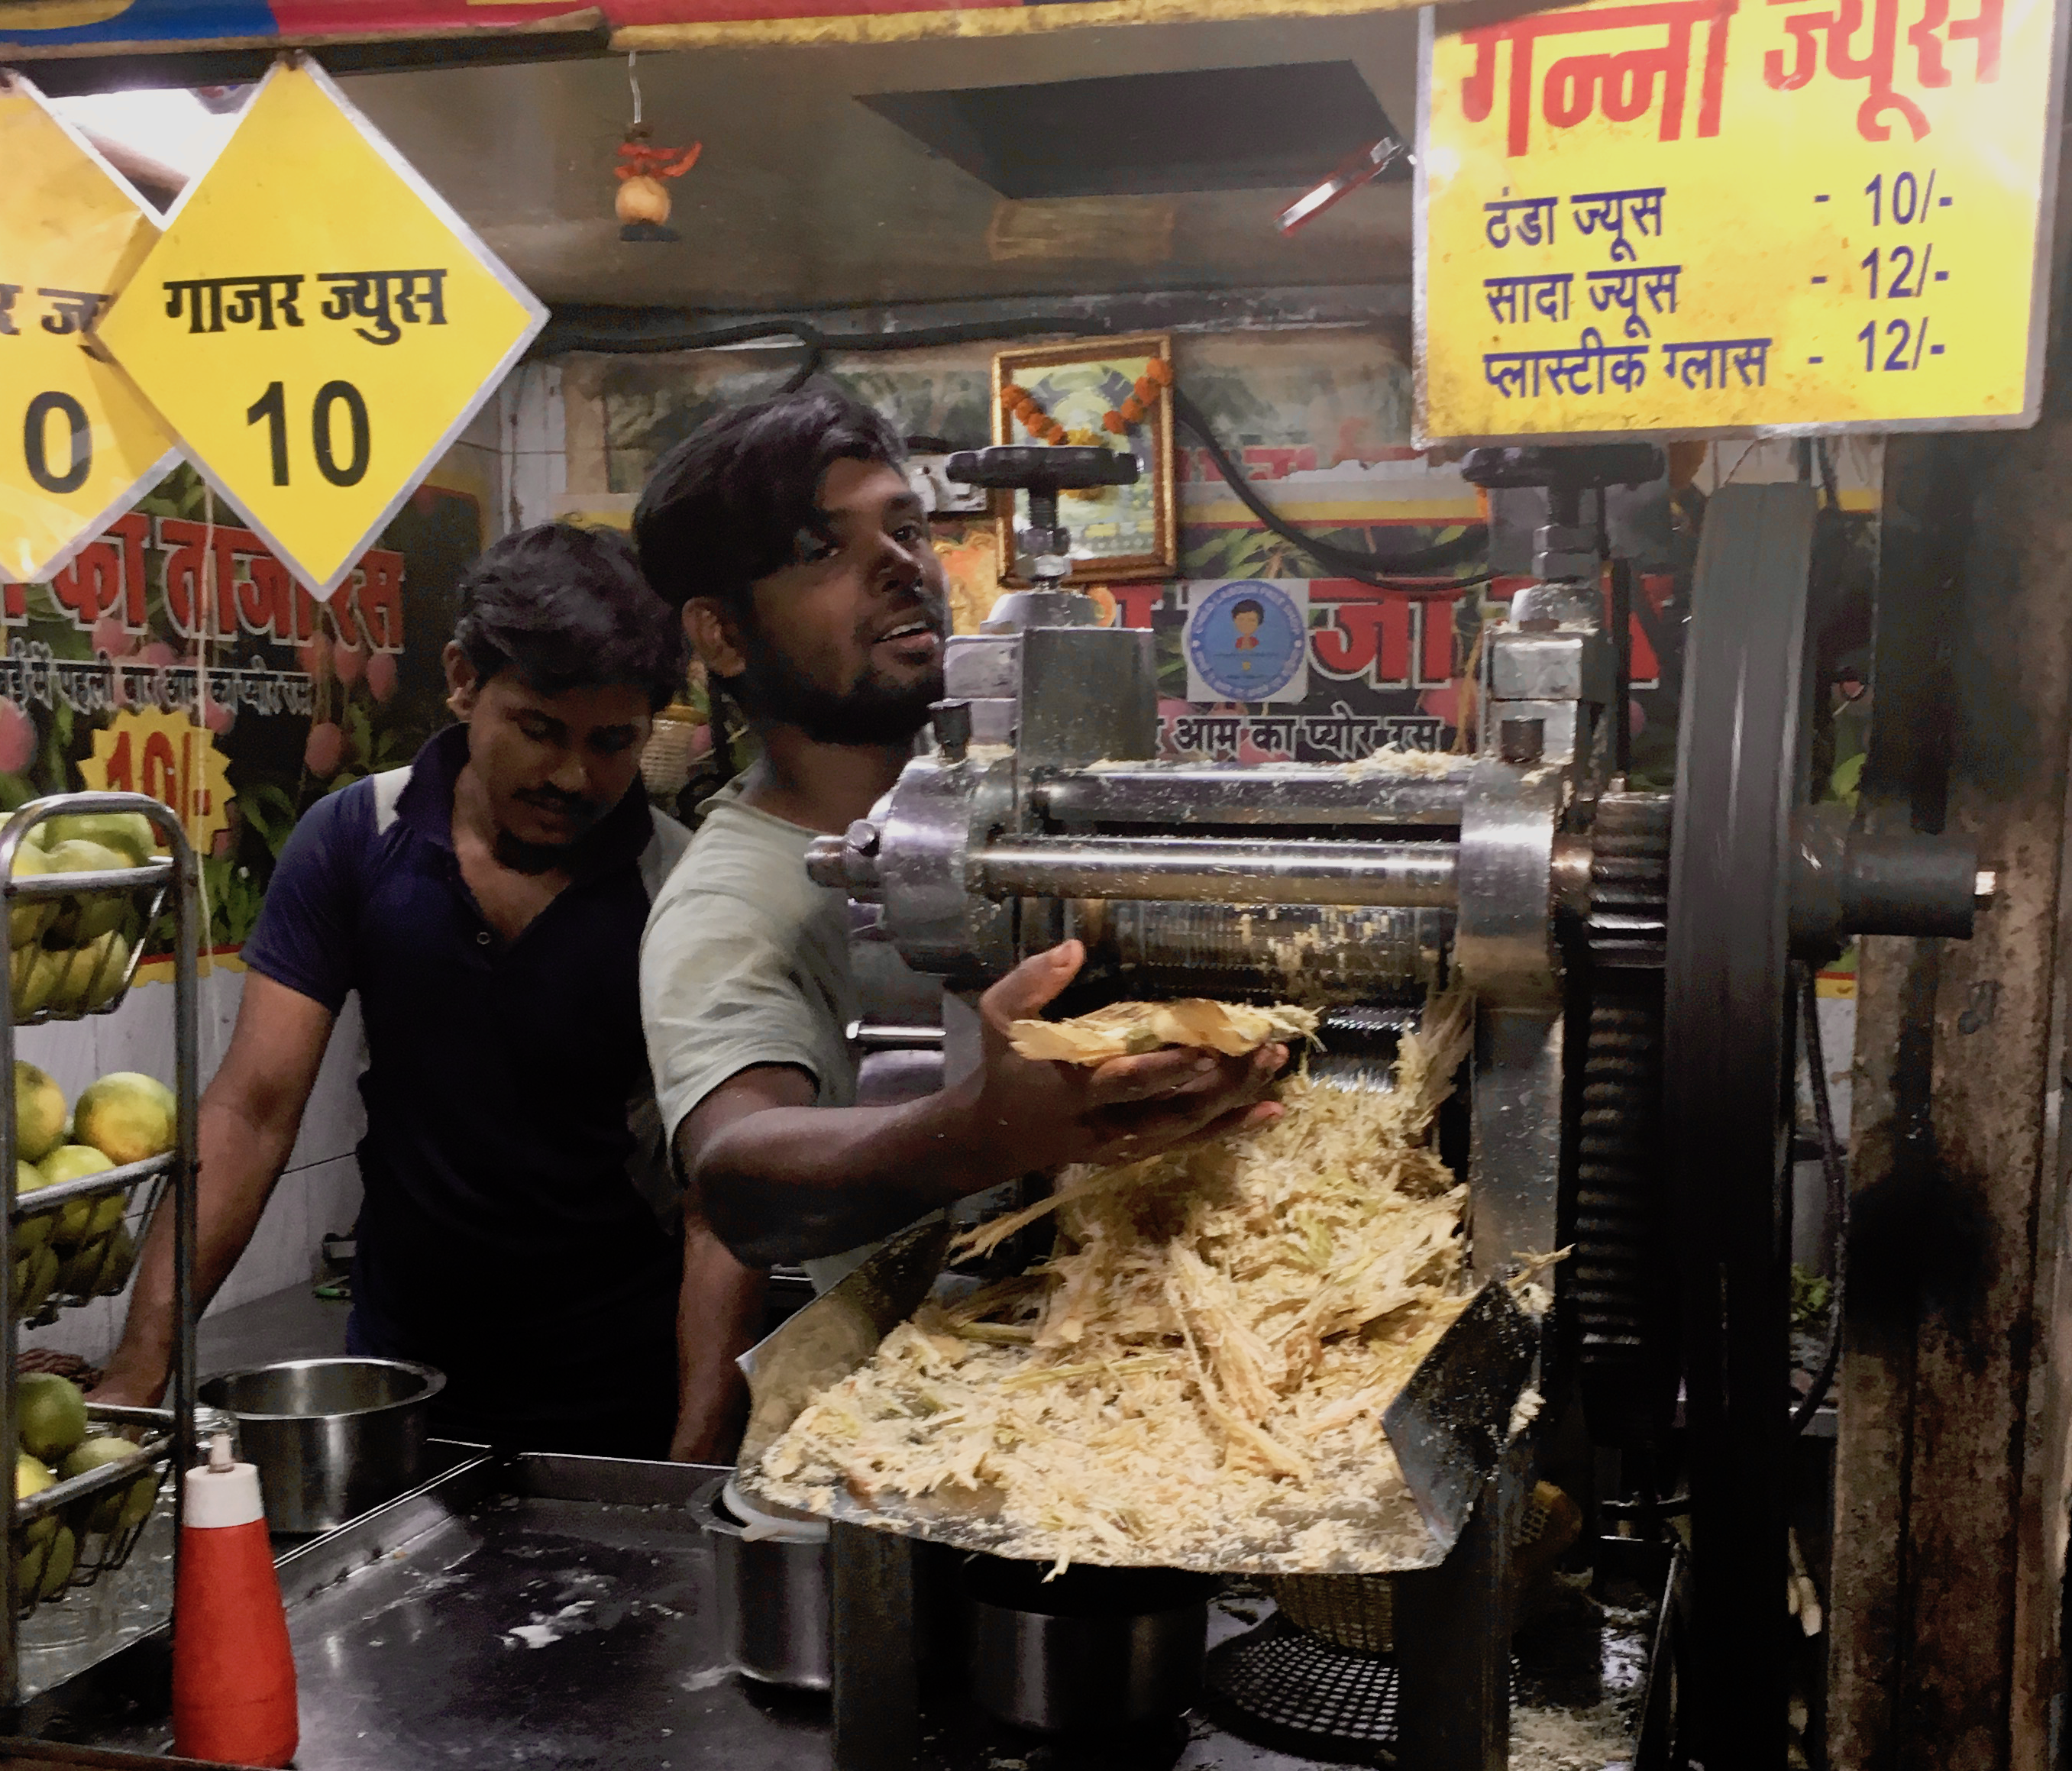 Juice vendor, Lower Parel, Mumbai